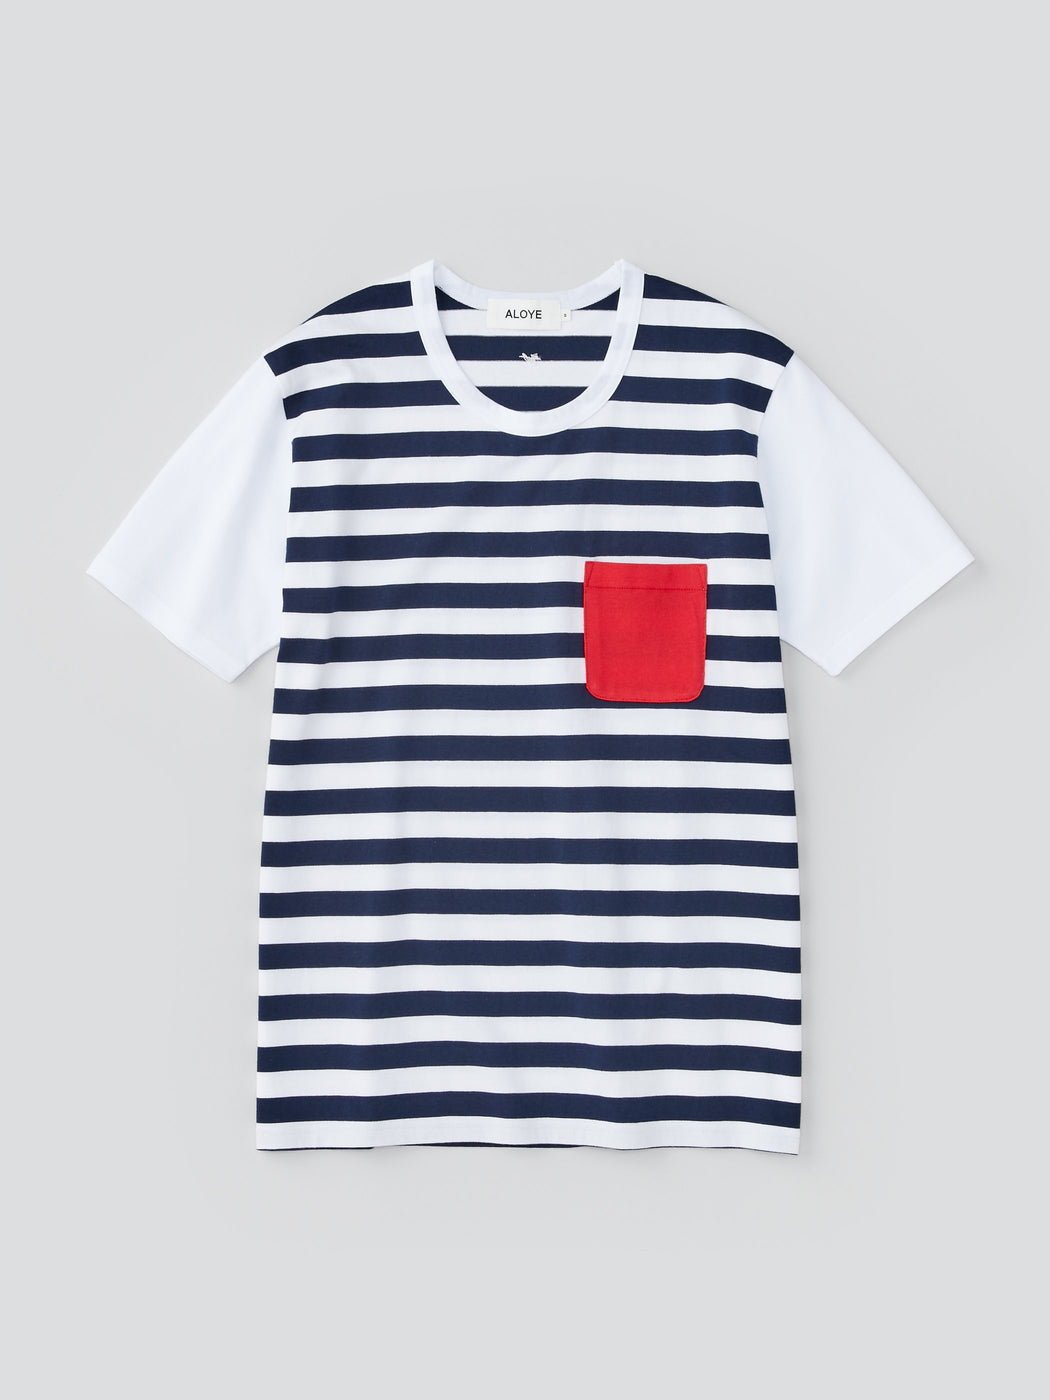 ALOYE Dots & Stripes Men's Short Sleeve T-shirt Navy Stripe-Red Pocket